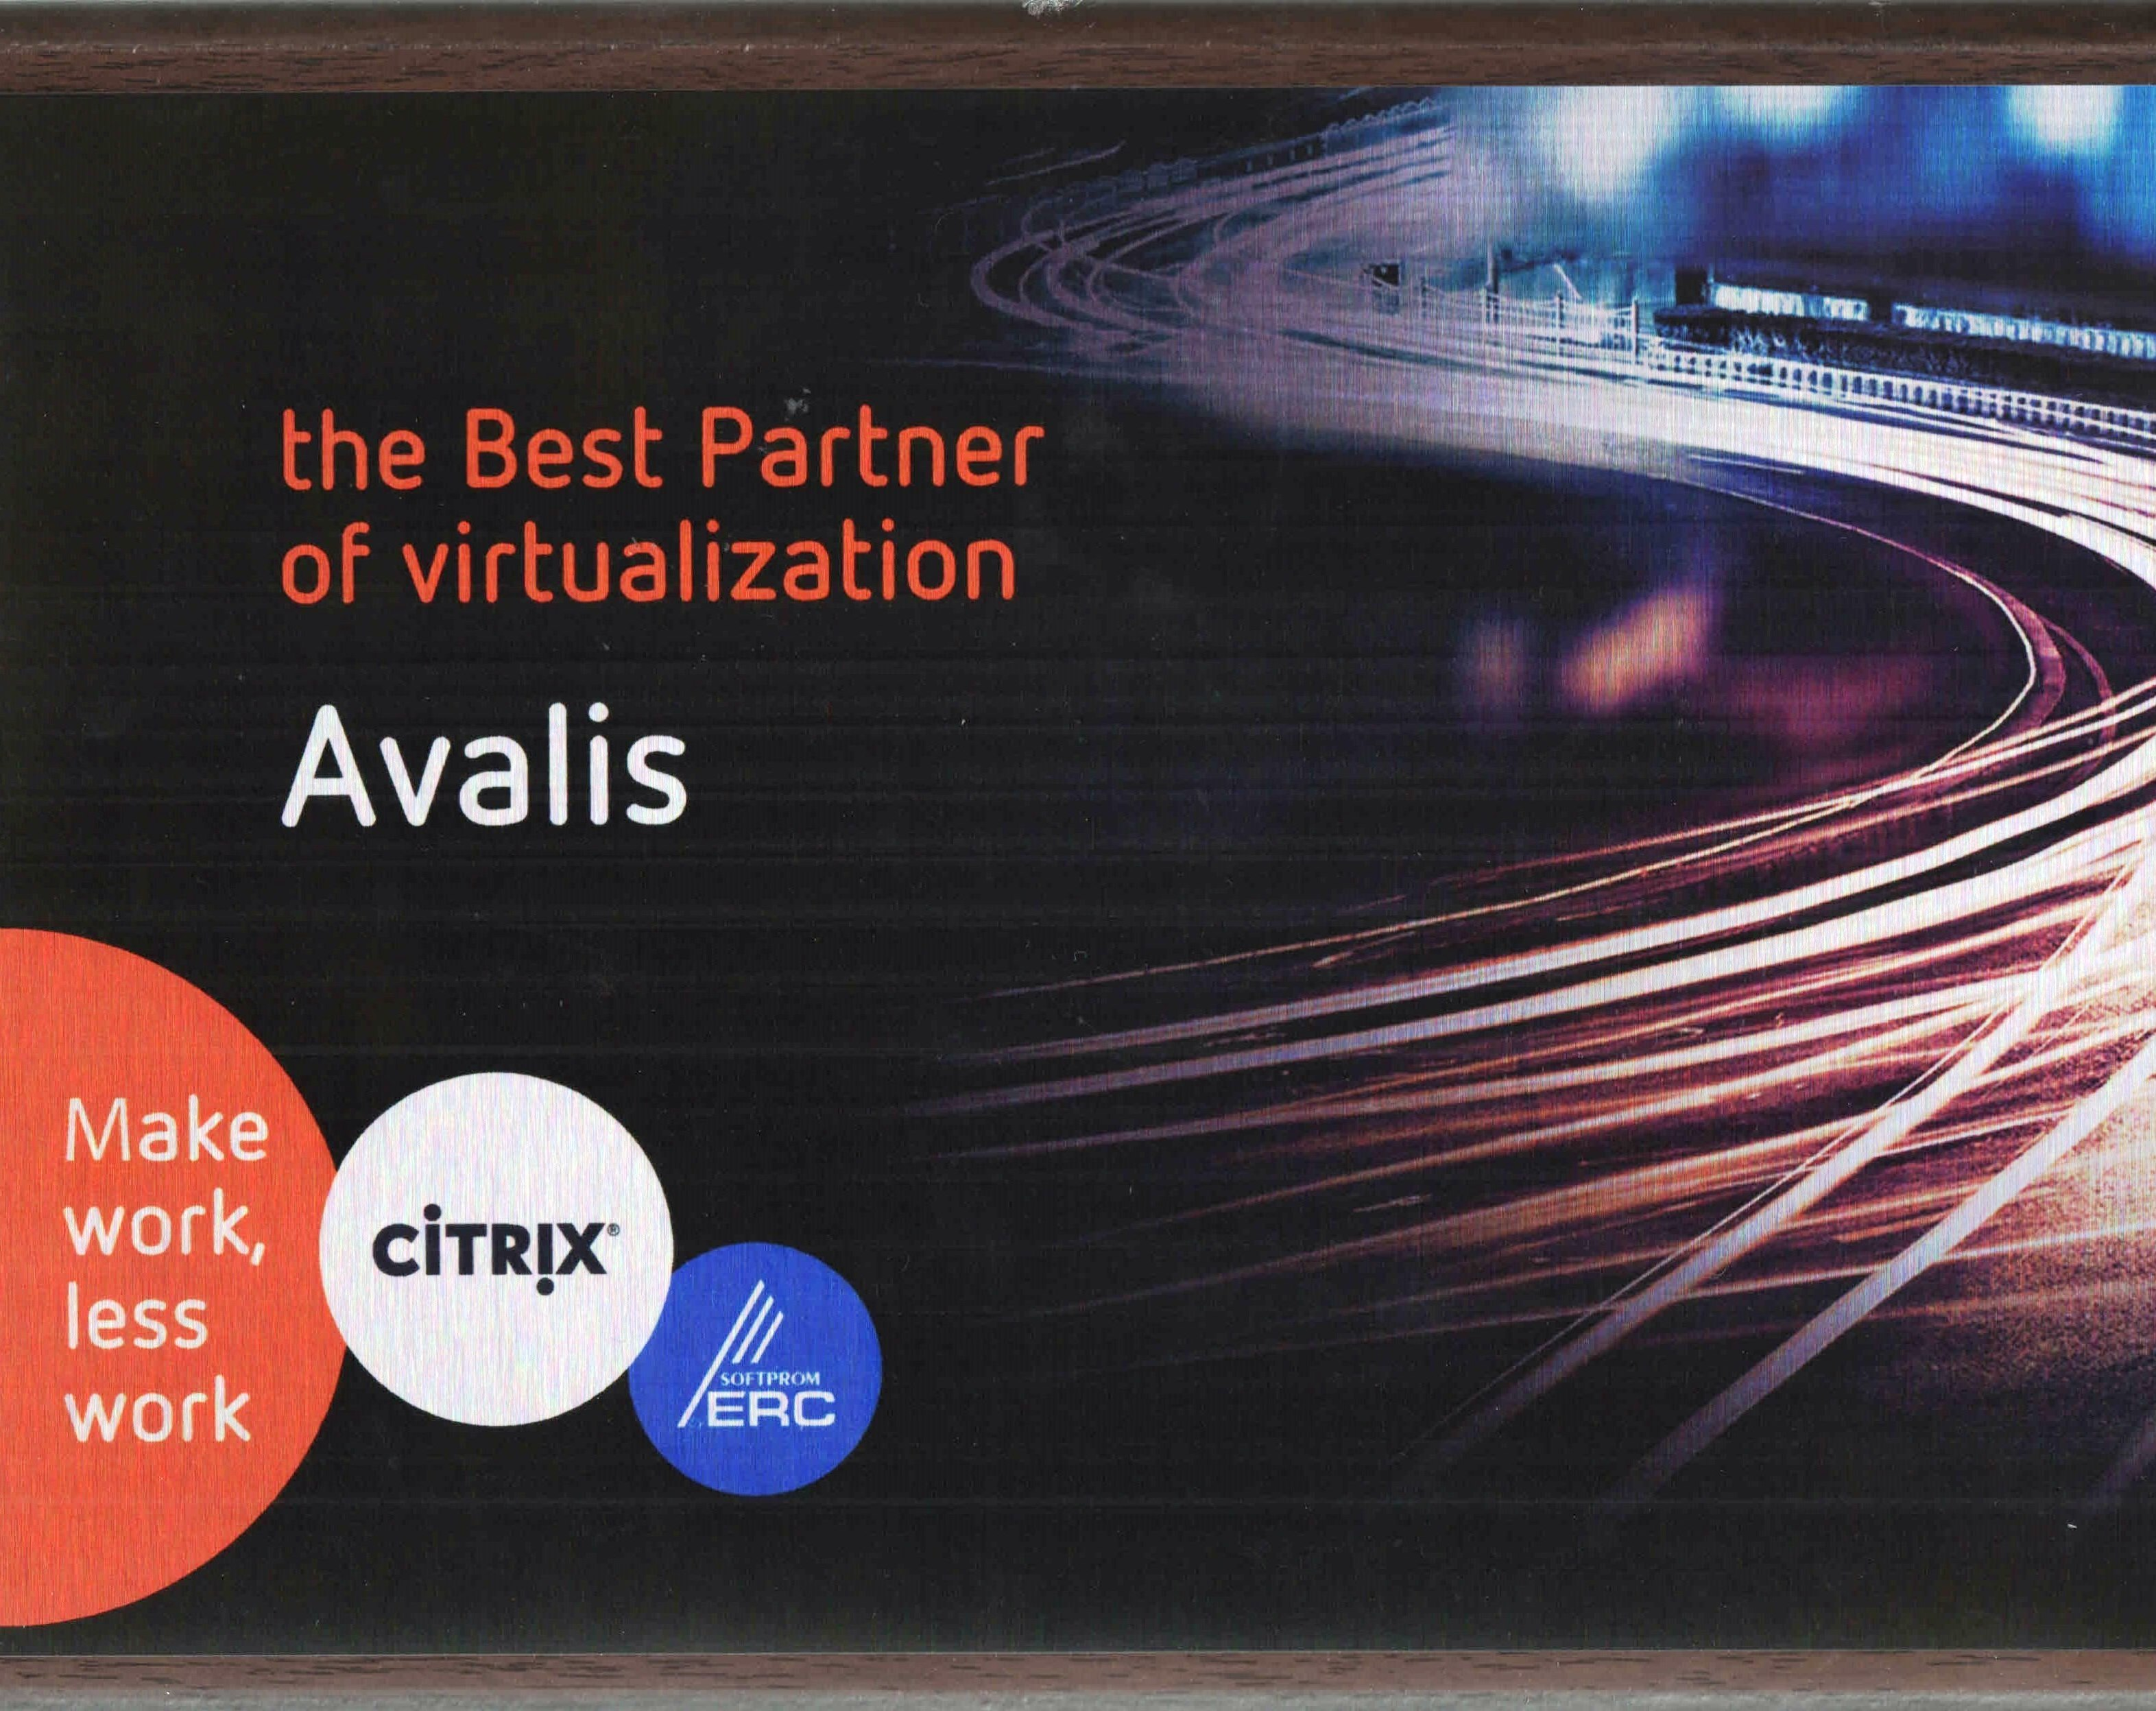 citrix best1